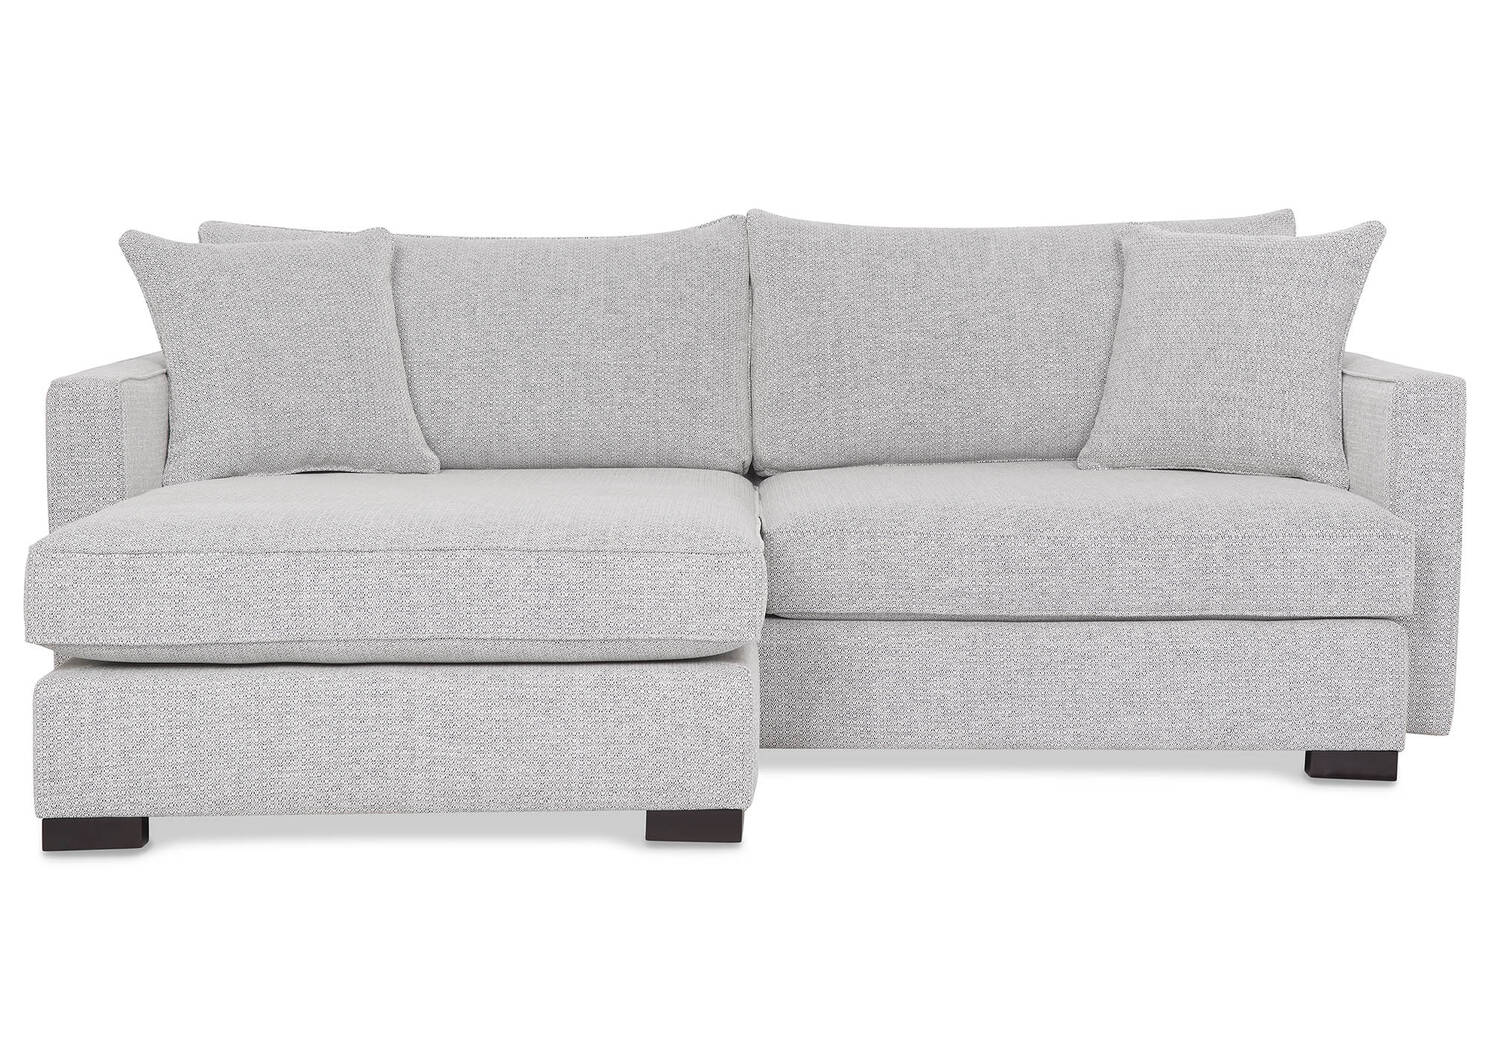 Sibley Custom Sofa Chaise